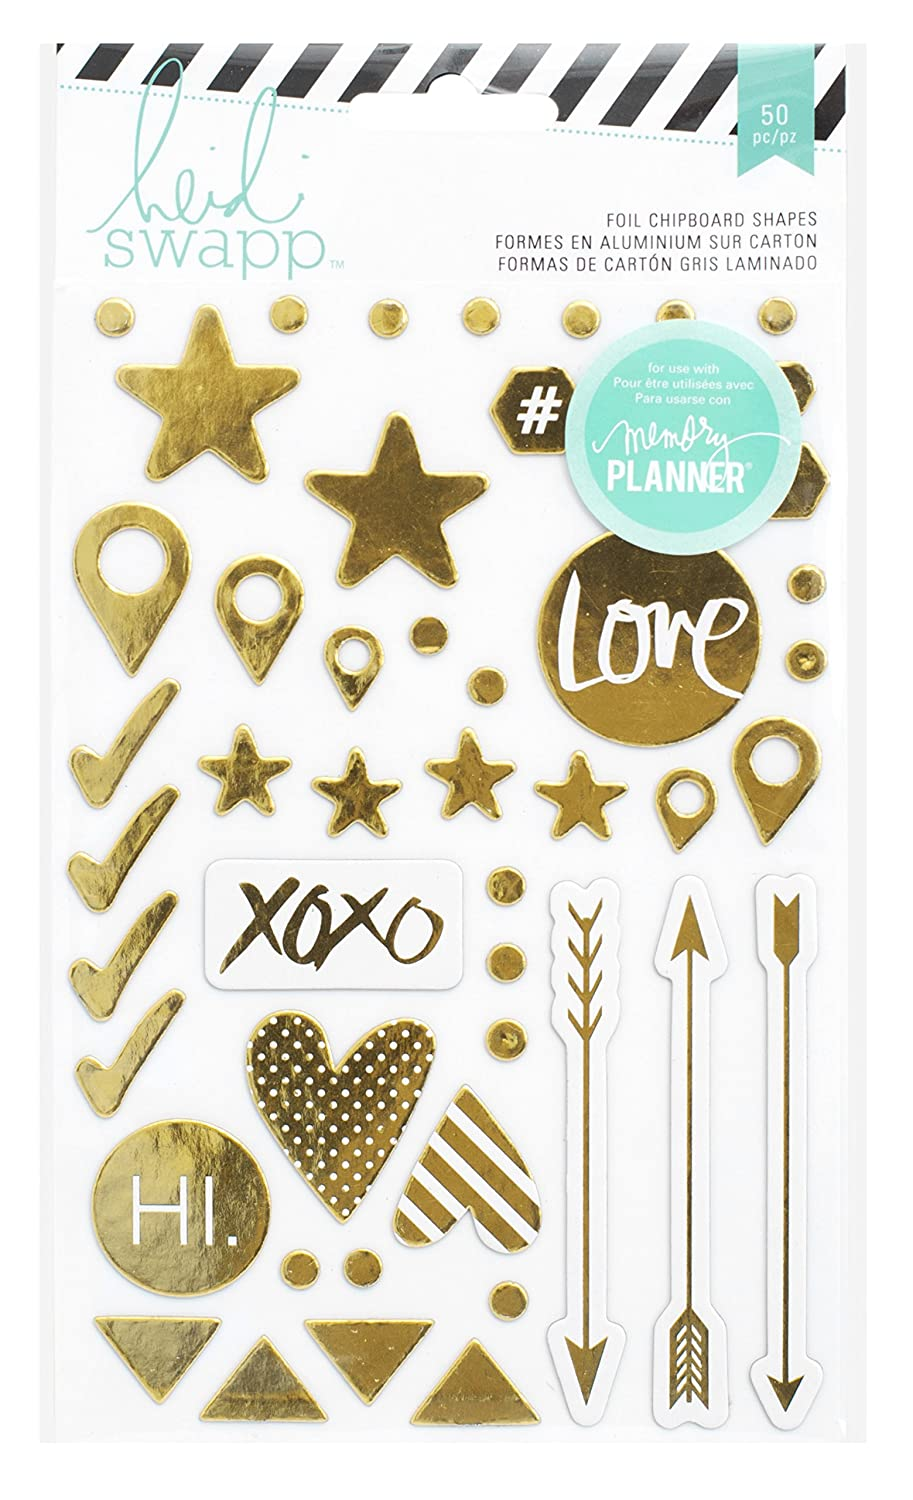 Heidi Swapp Hello Beautiful Foil Chipboard Shapes American Crafts 369961